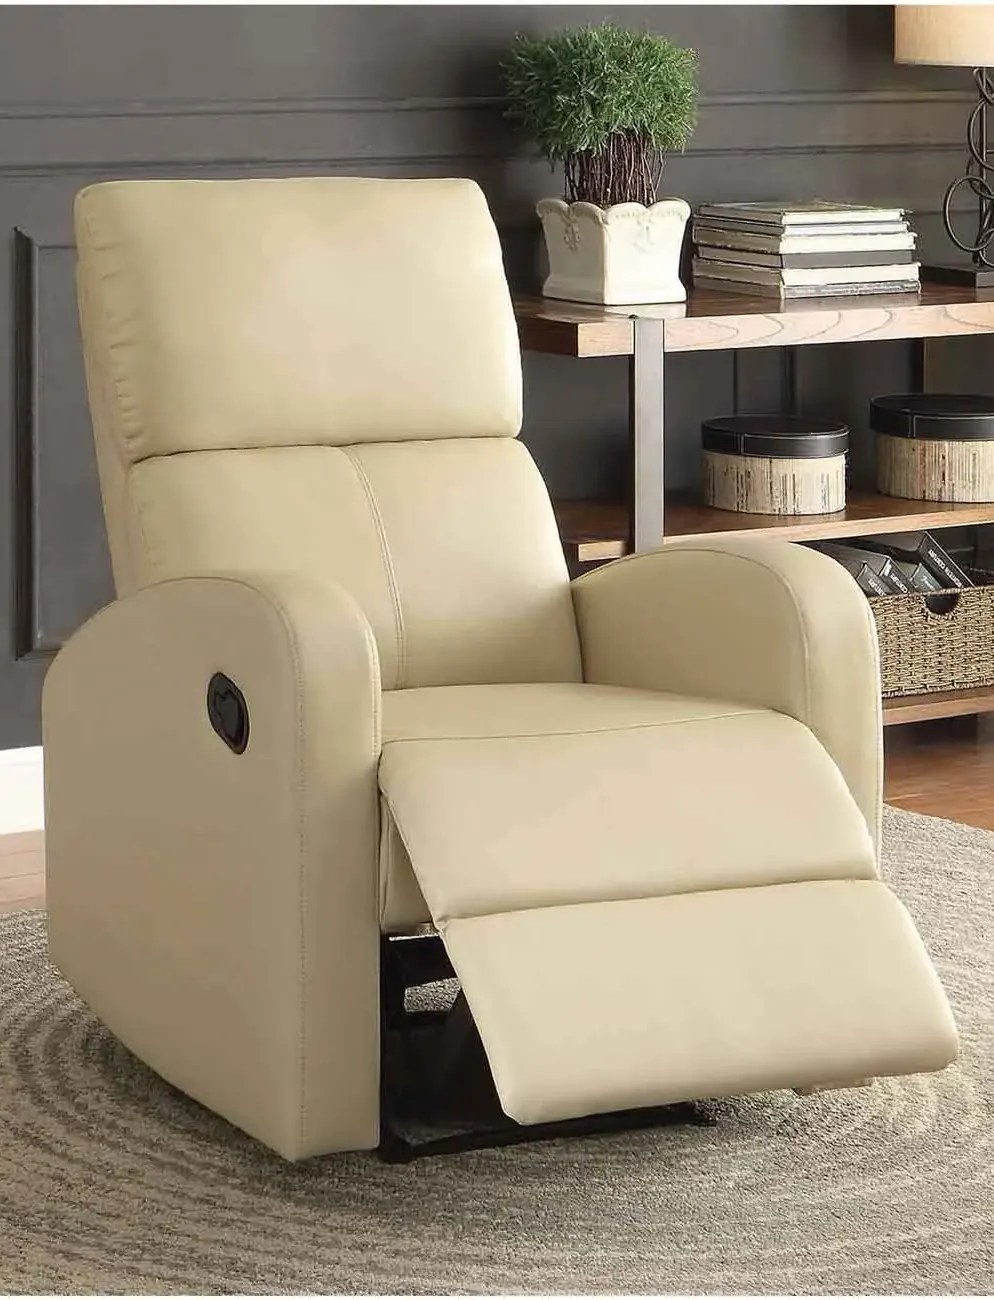 4 Biggest Problems With Manual Reclining Furniture Furniture Fair Cincinnati Dayton Louisville